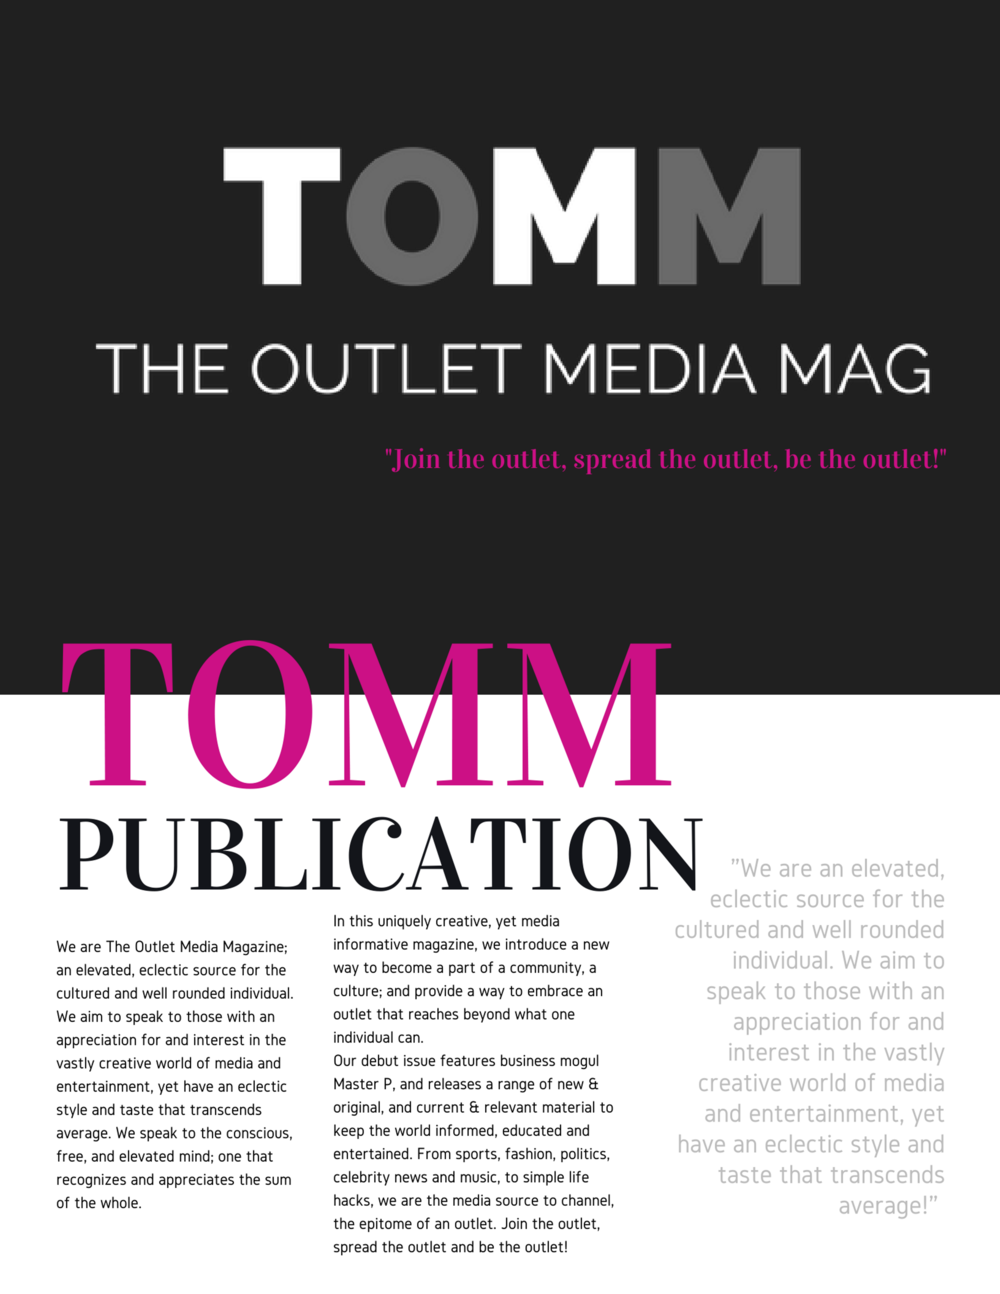 THE OUTLET MEDIA MAG OFFICIAL (edits) About us.png